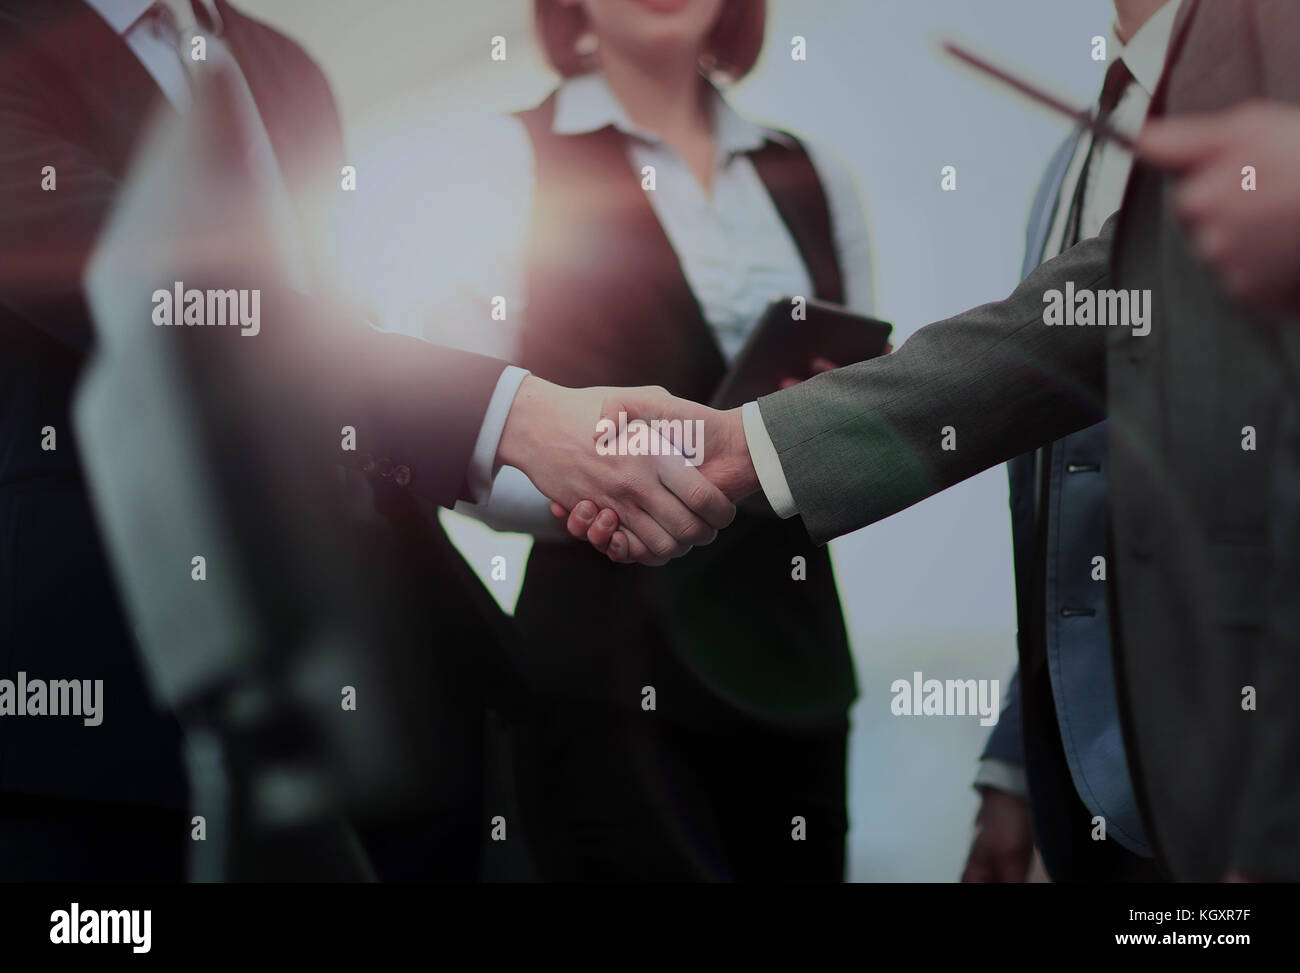 Business People Meeting Discussion Corporate Handshake Concept - Stock Image